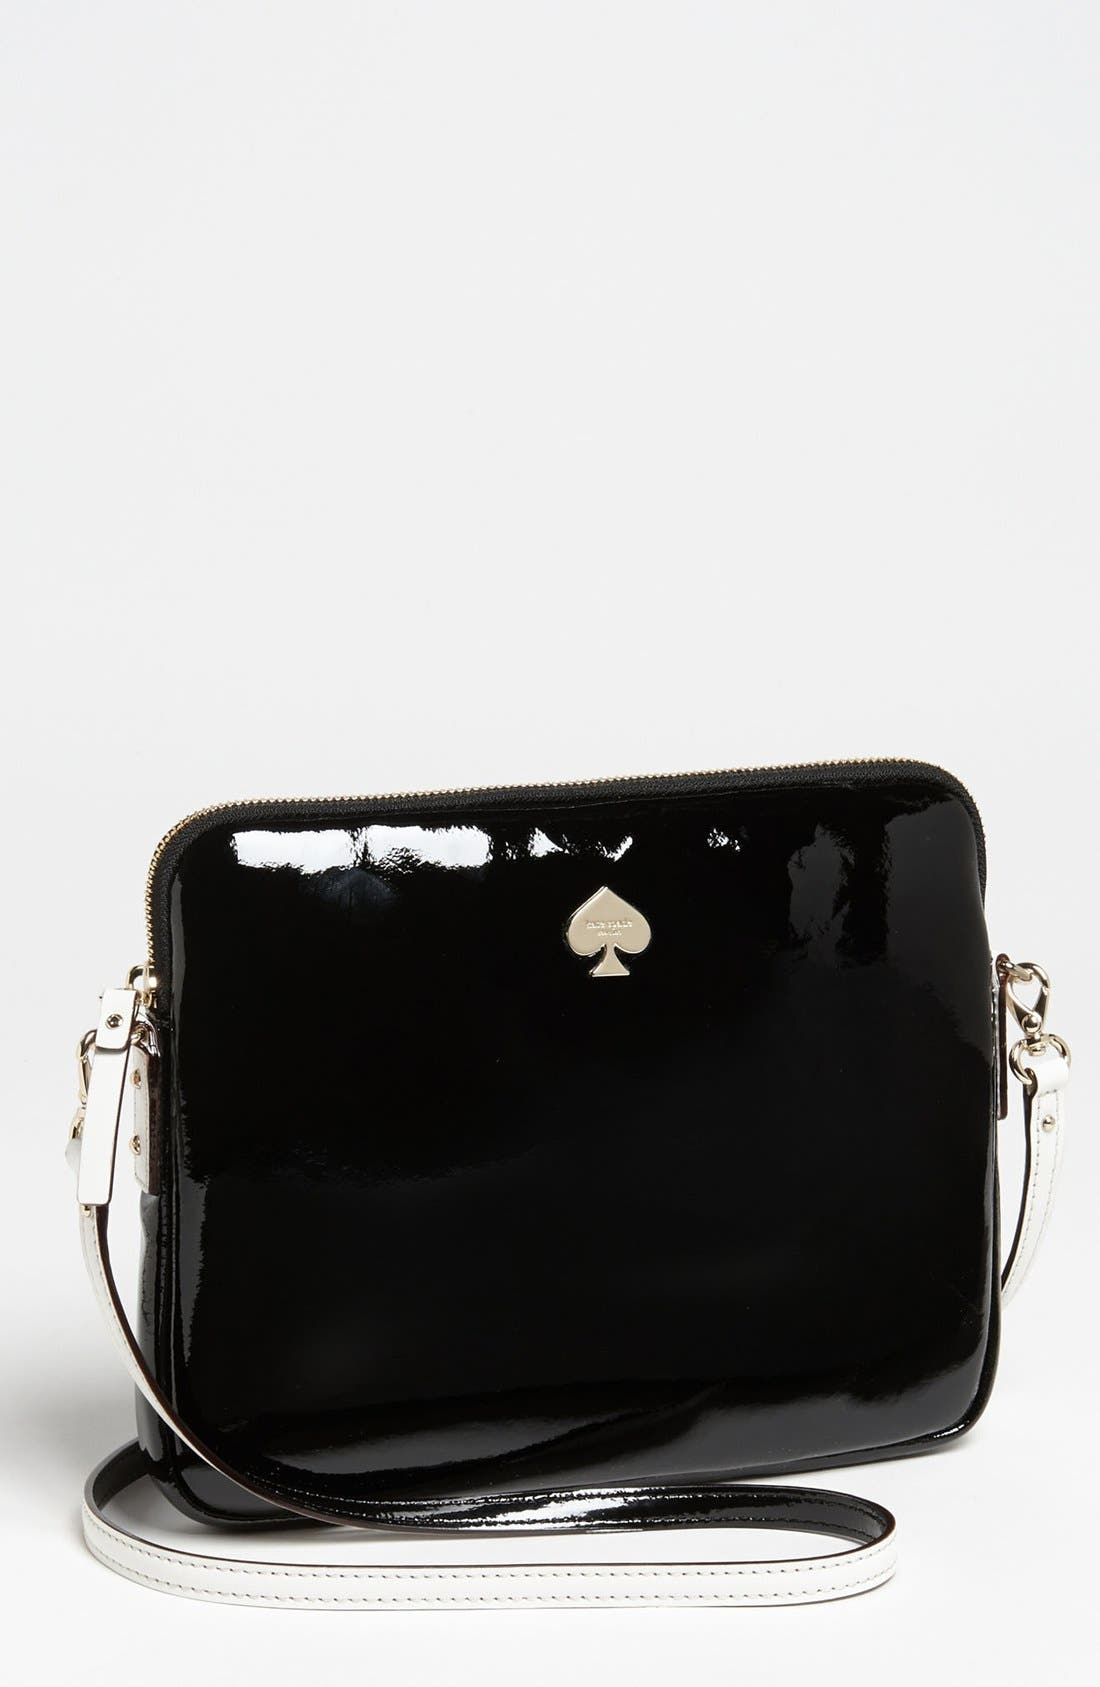 Alternate Image 1 Selected - kate spade new york 'bryce - flicker' patent leather iPad crossbody bag